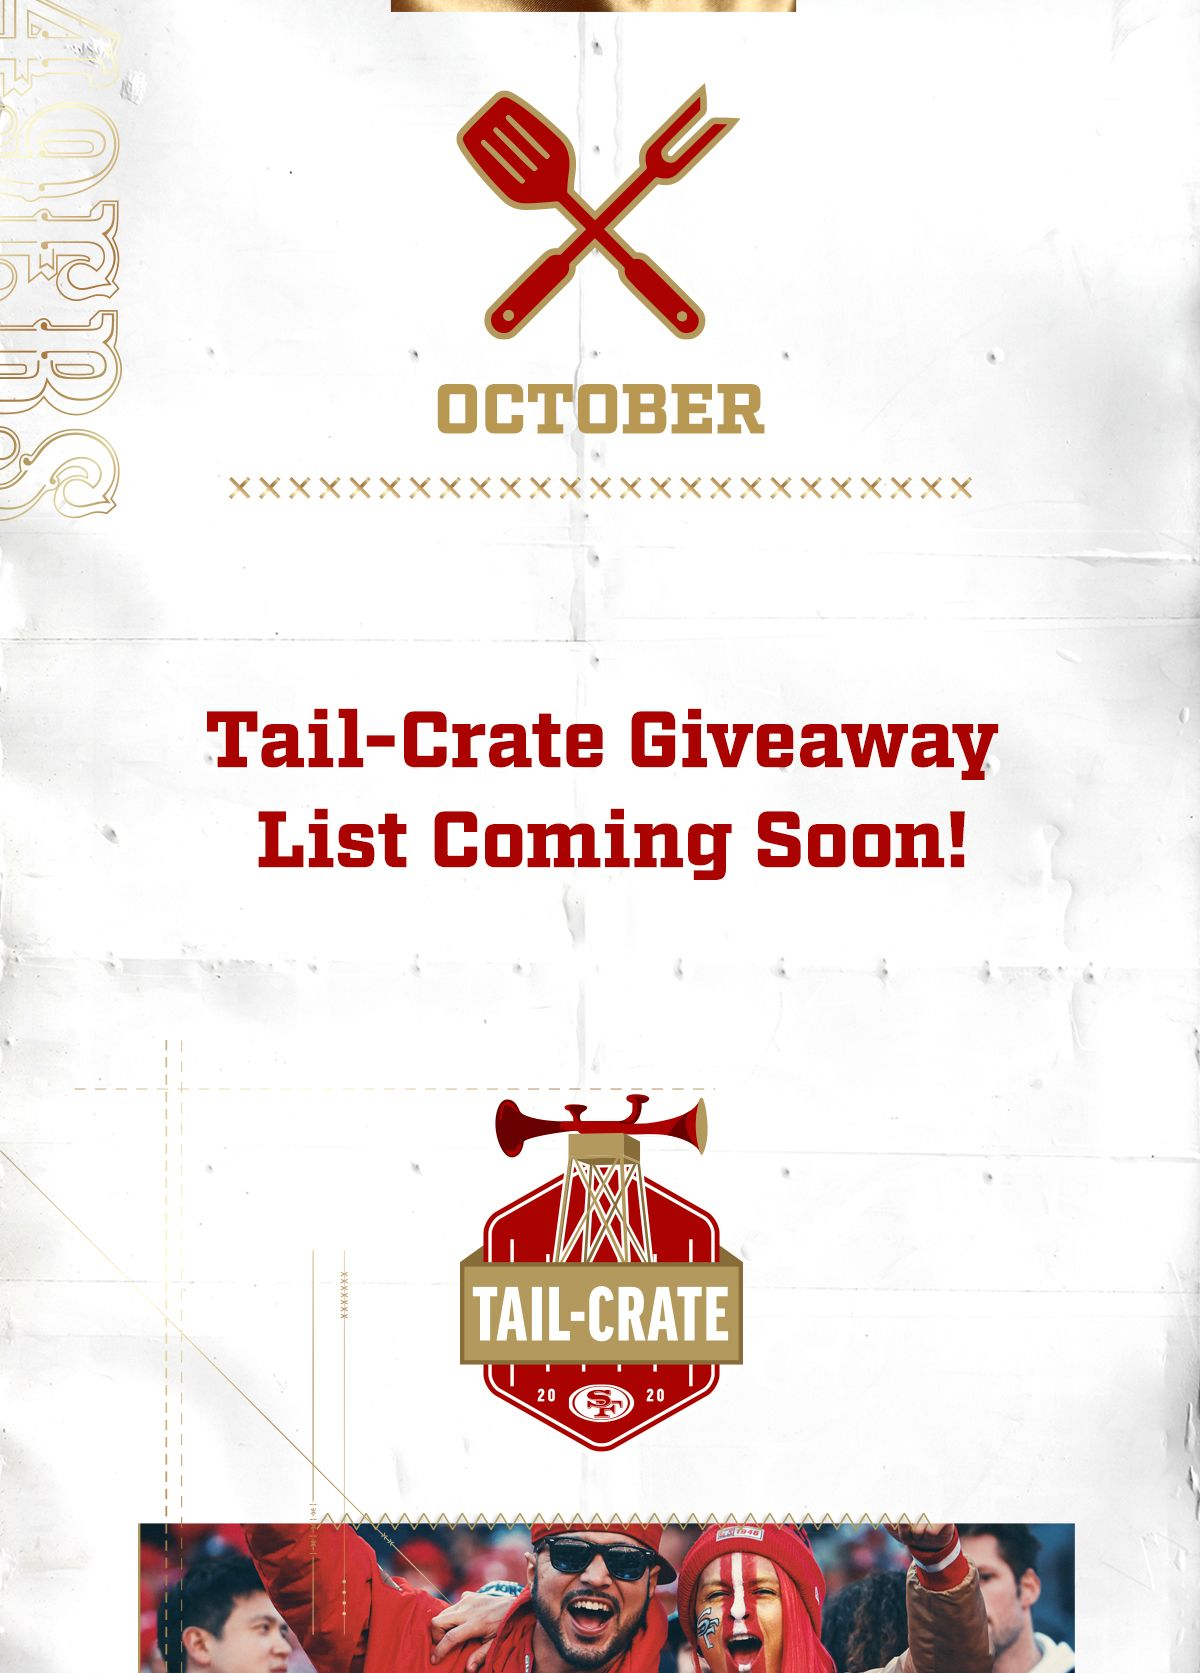 Tail-Crate Web Assets-Oct-4x5